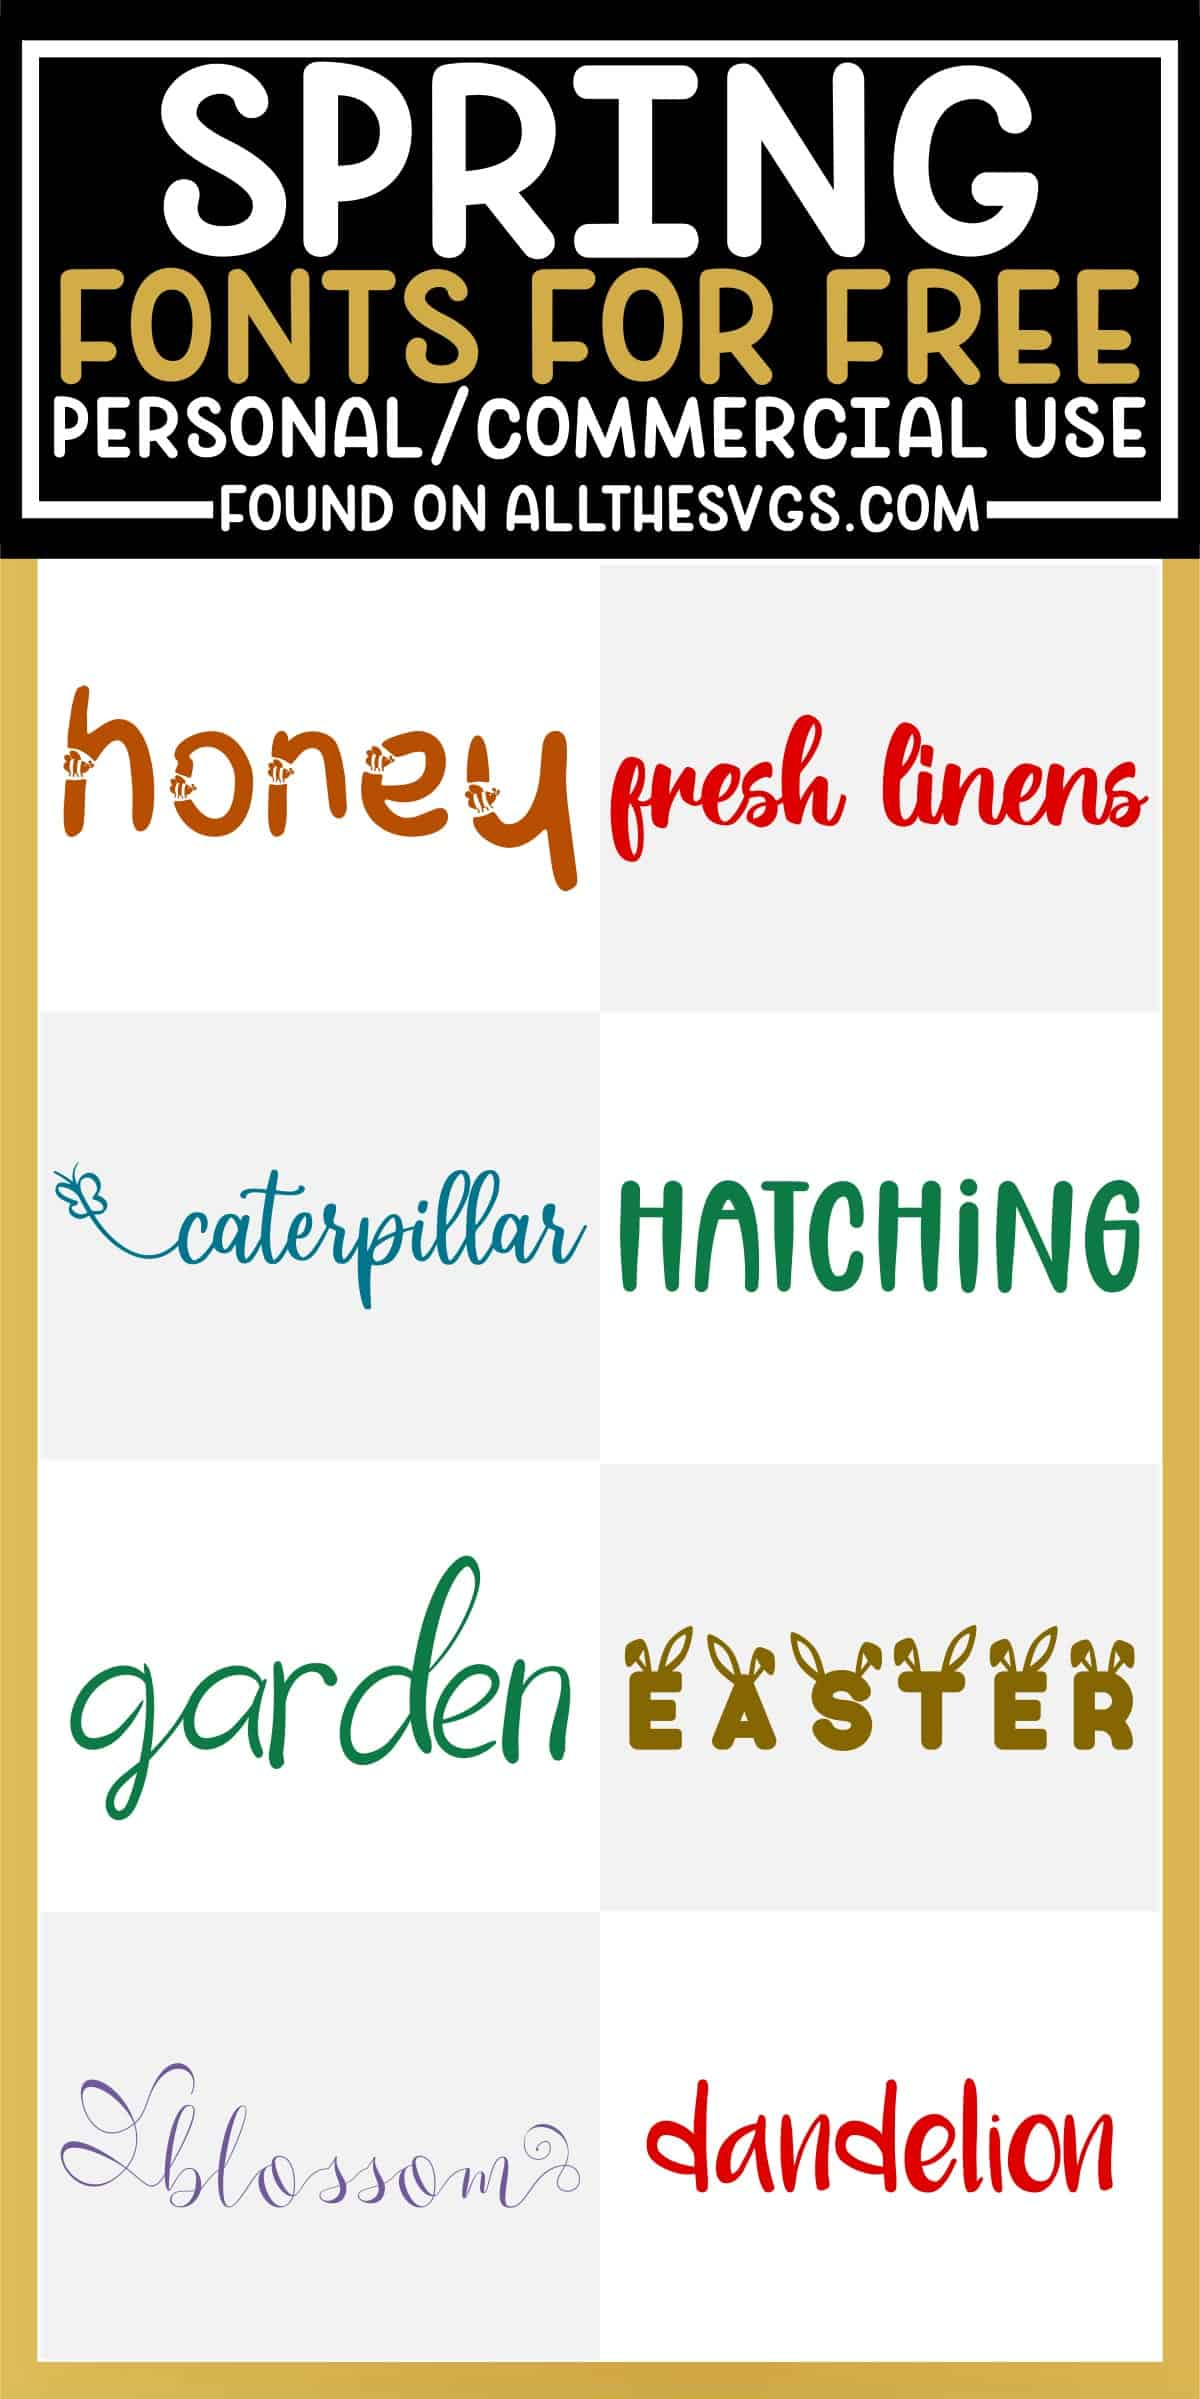 showcase of 8 best free spring fonts for commercial use.